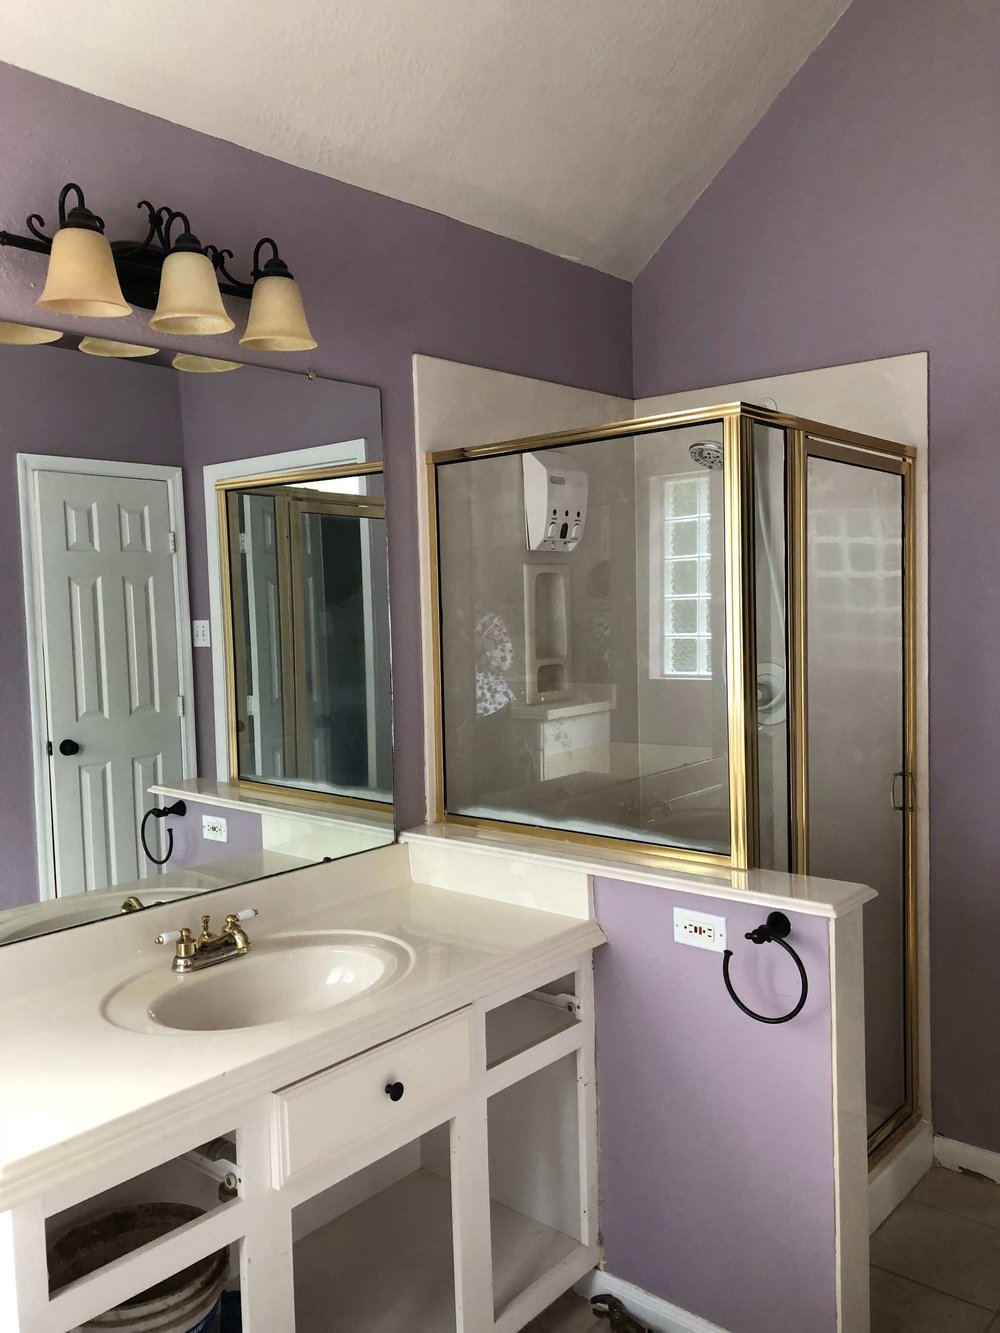 Bathroom Remodel Outer Banks: Planning A Bathroom Remodel? Consider The Layout First